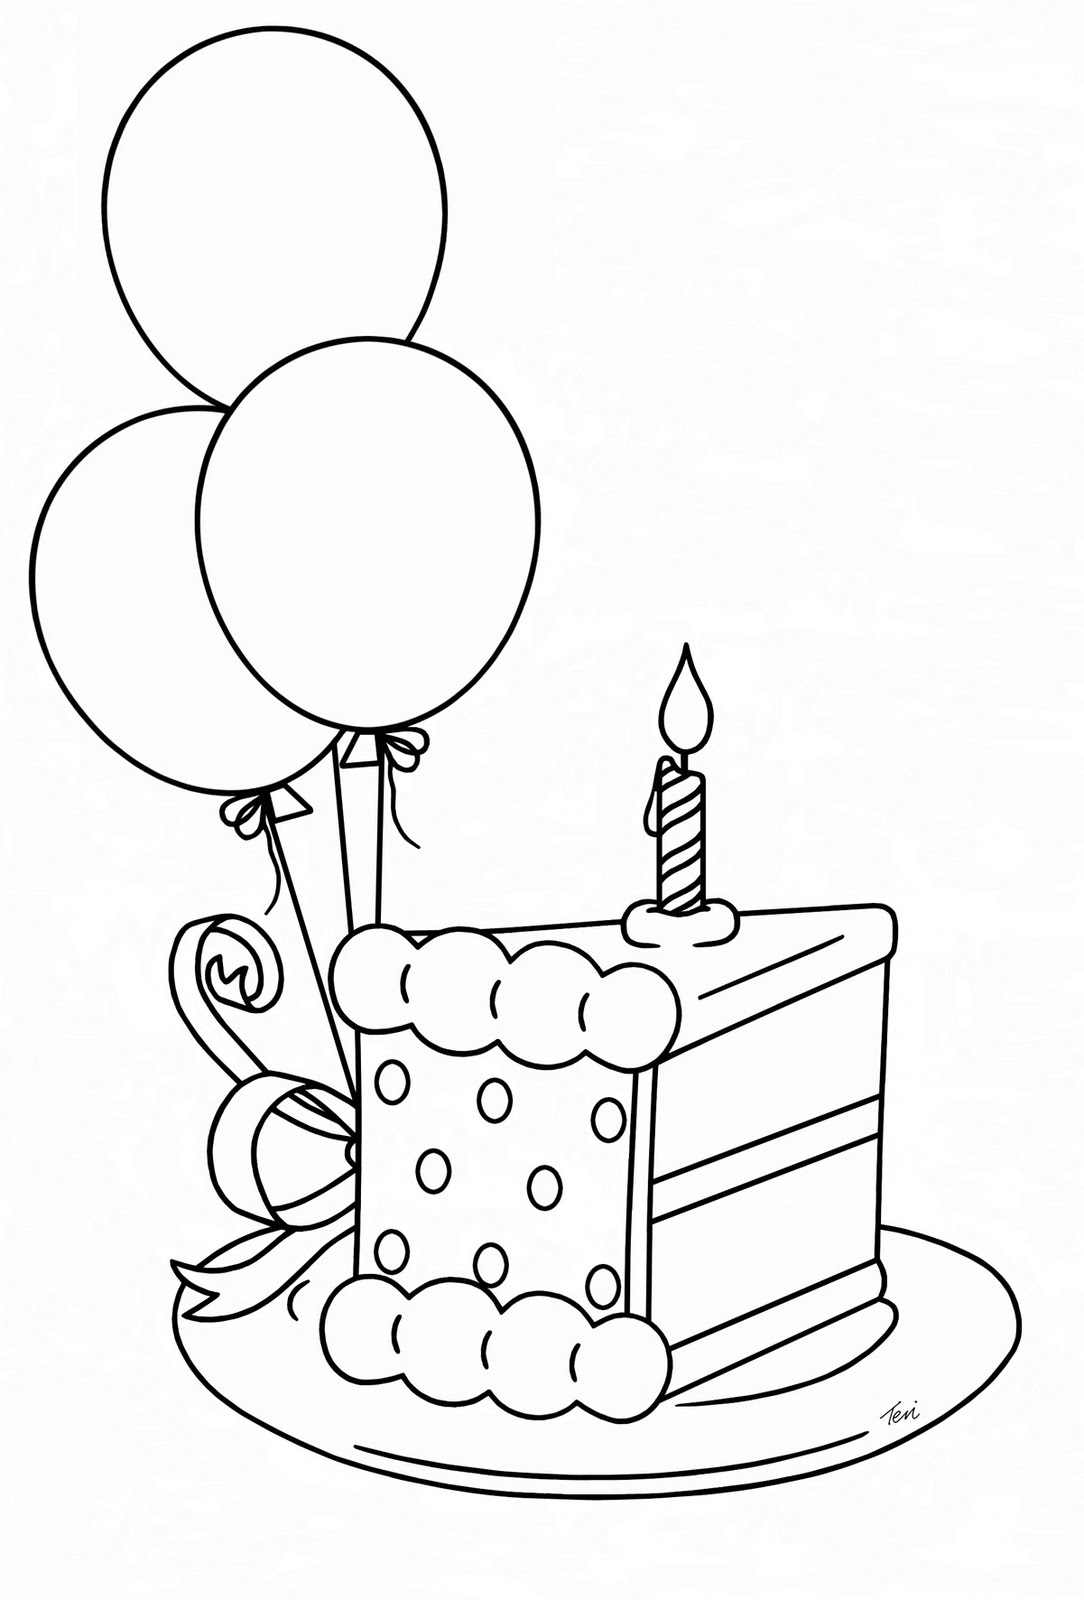 Try it on Tuesday: HAPPY BIRTHDAY TUESDAY TAGGERS!